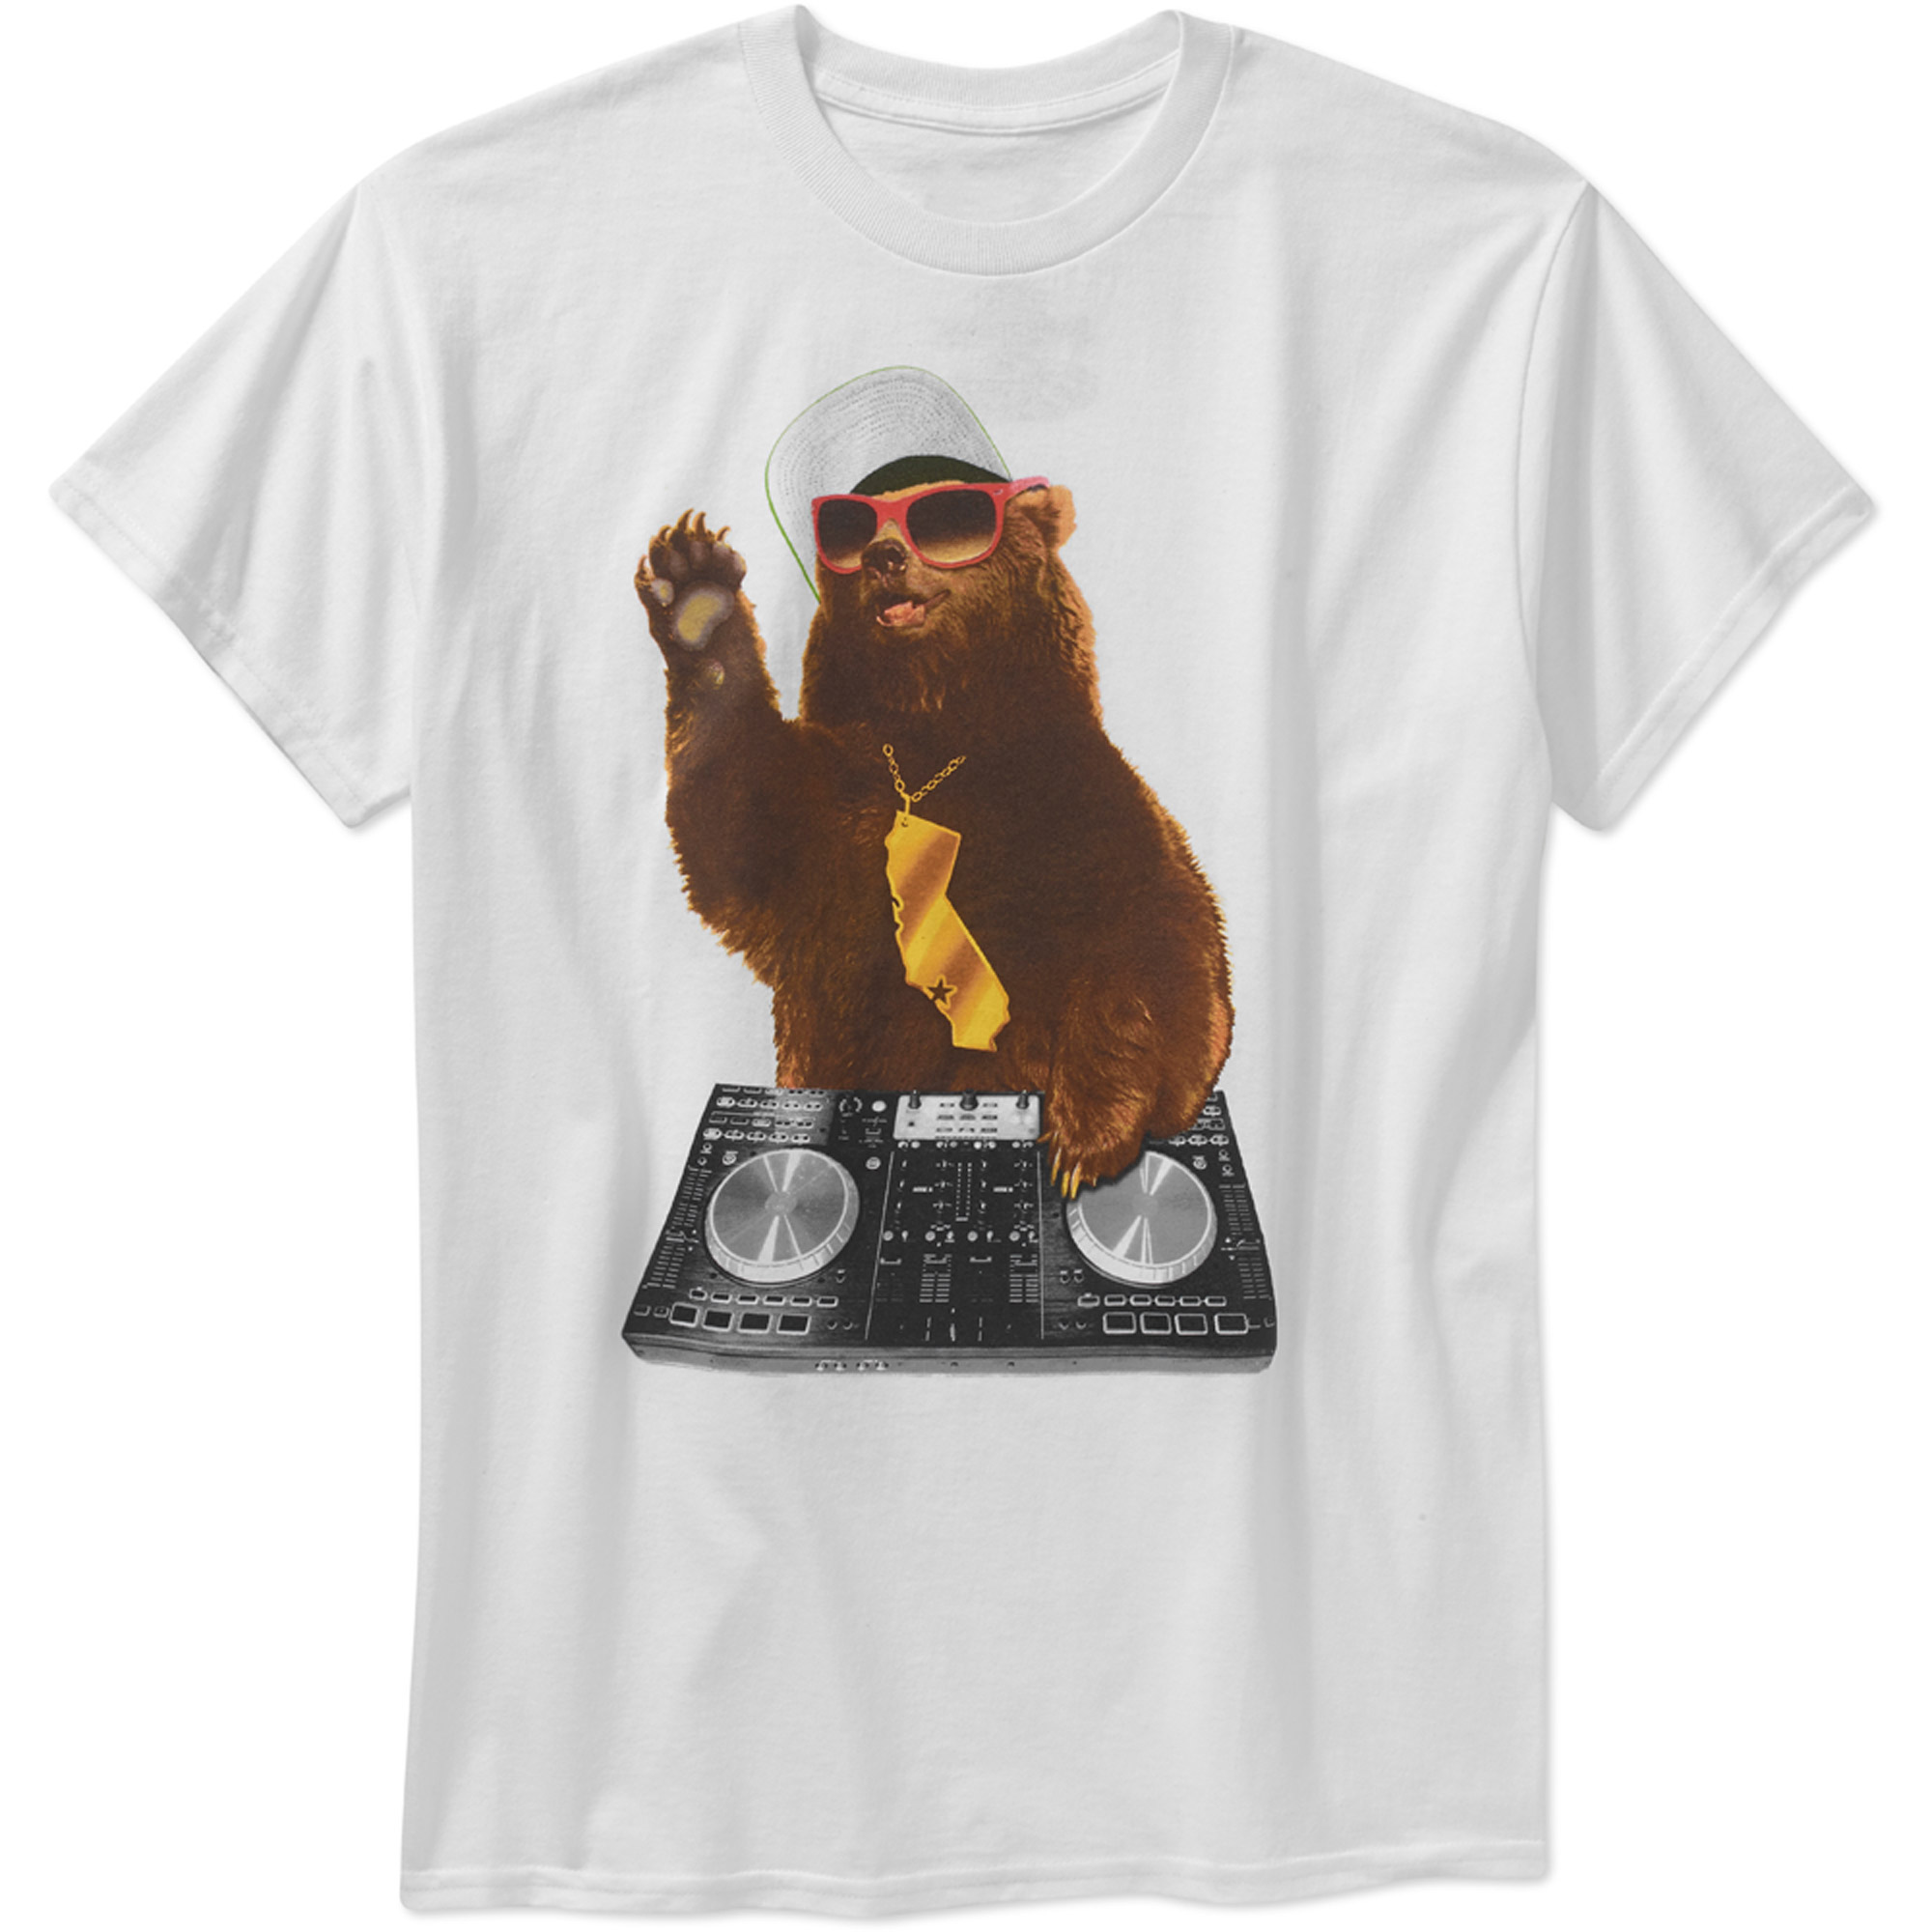 Cali Bear DJ Big Men's Graphic Tee